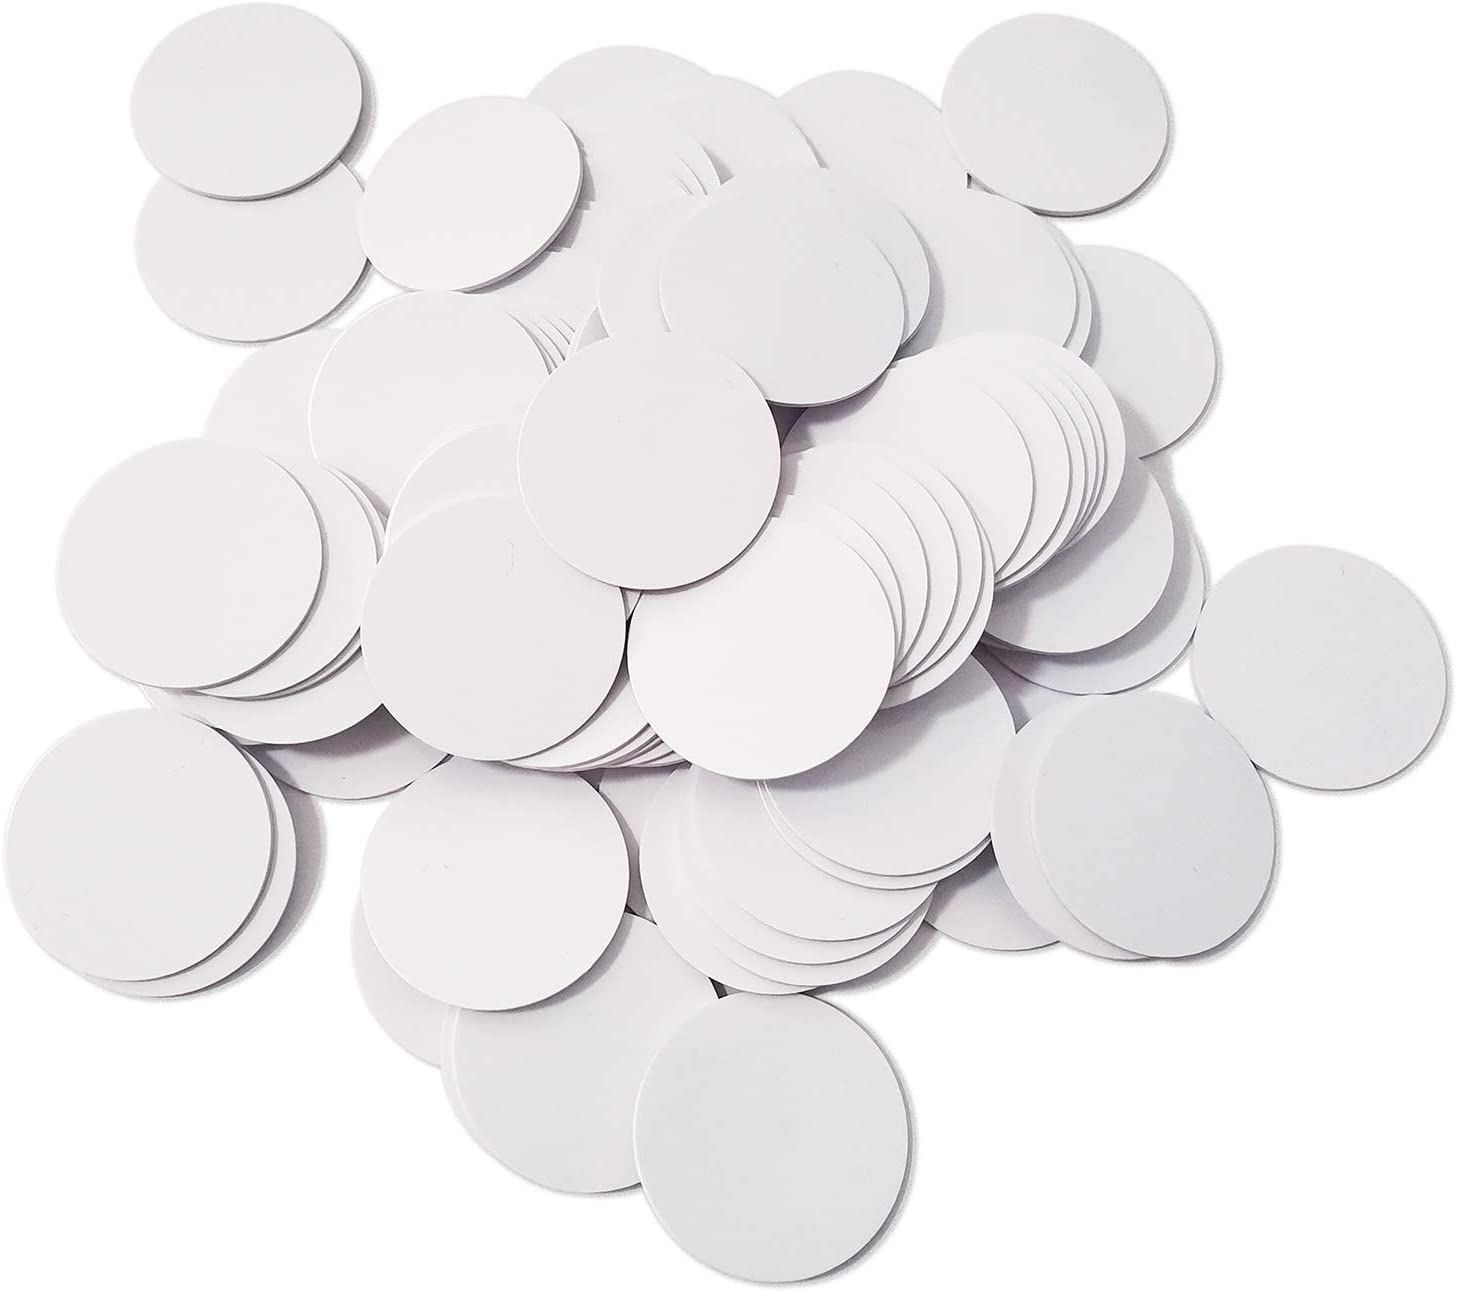 THONSEN 100 Pieces NFC Tags NTAG215 Max 67% Bombing new work OFF 30mm 1.18 Cards NF inch